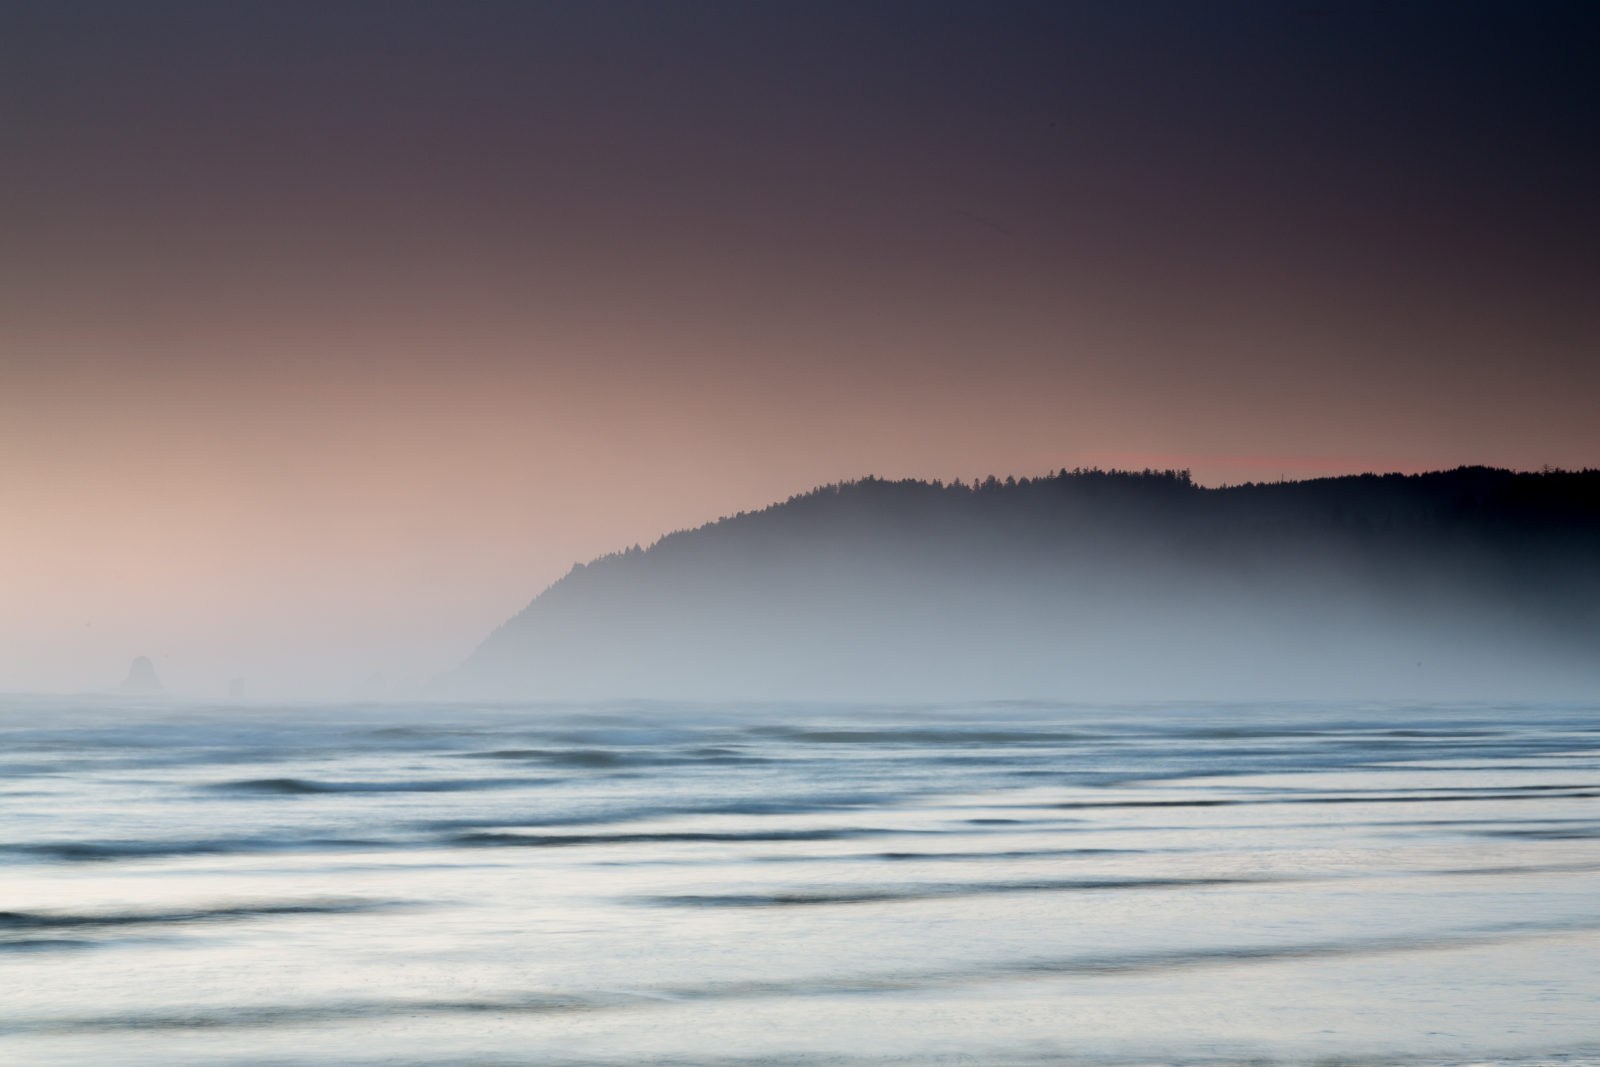 Tillamook Head at Dusk